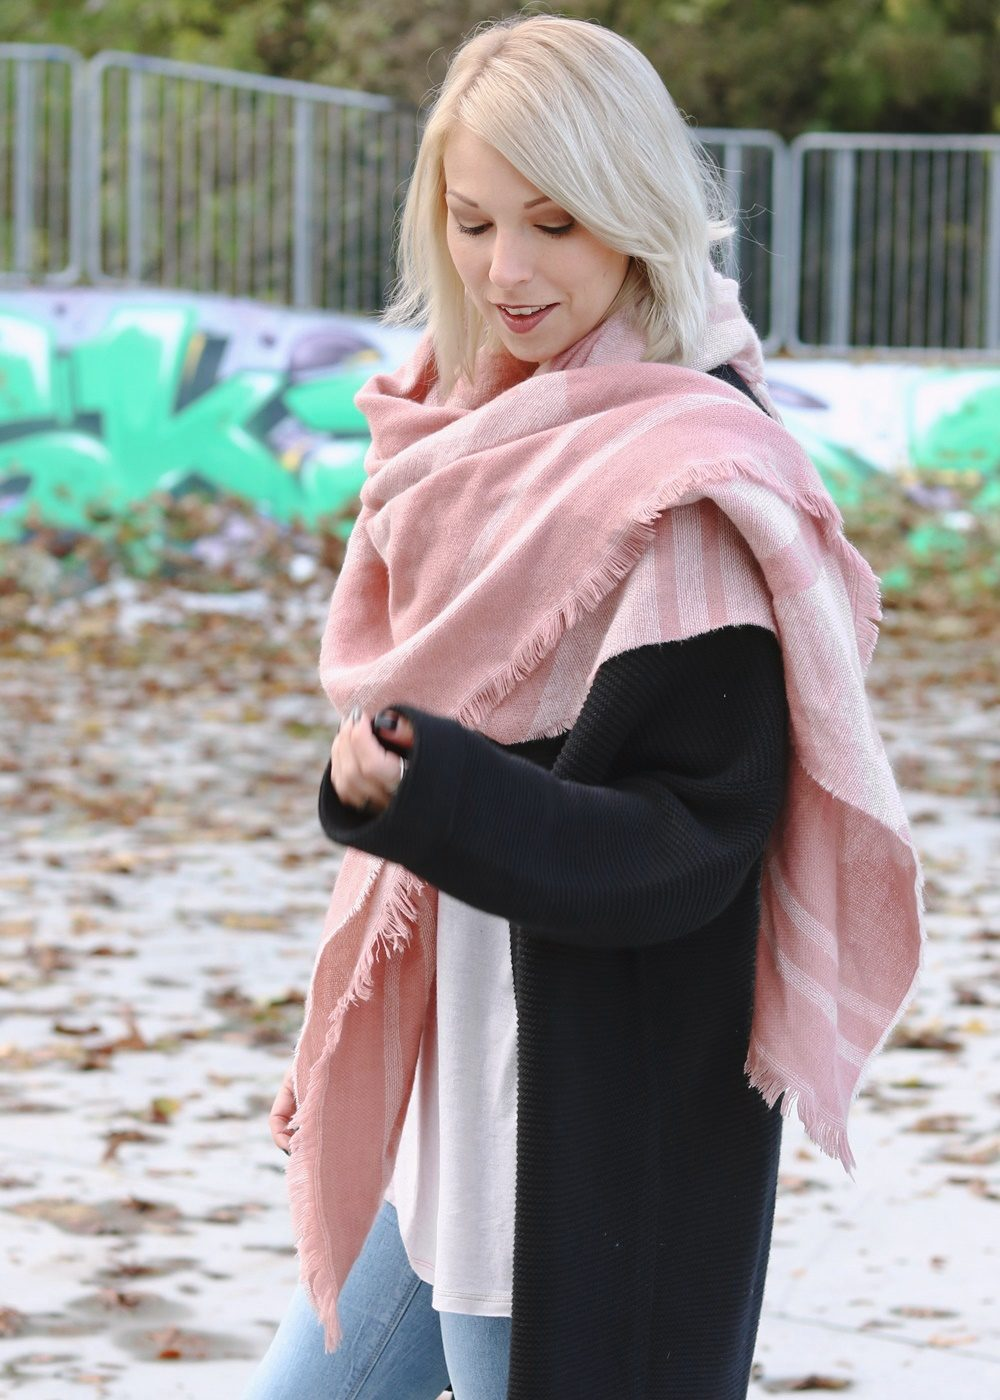 modeblogger-karlsruhe-outfit-herbst-skinnyjeans-rosa-schal-strickcardigan-reebok-classics-pearlized-metallic-13